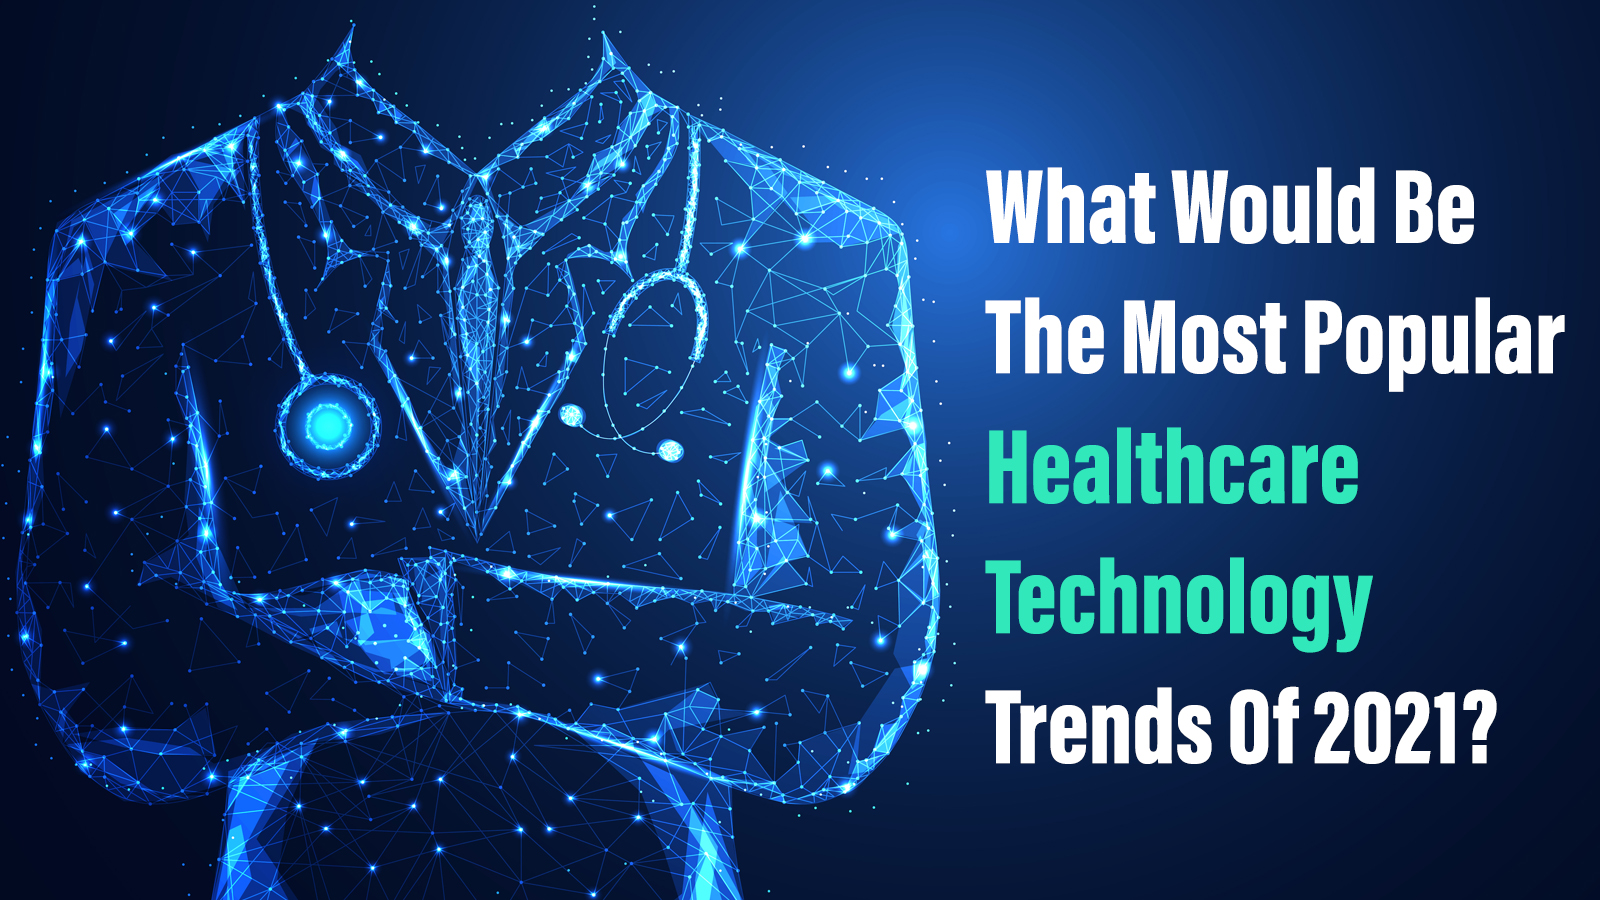 What Would Be The Most Popular Healthcare Technology Trends Of 2021